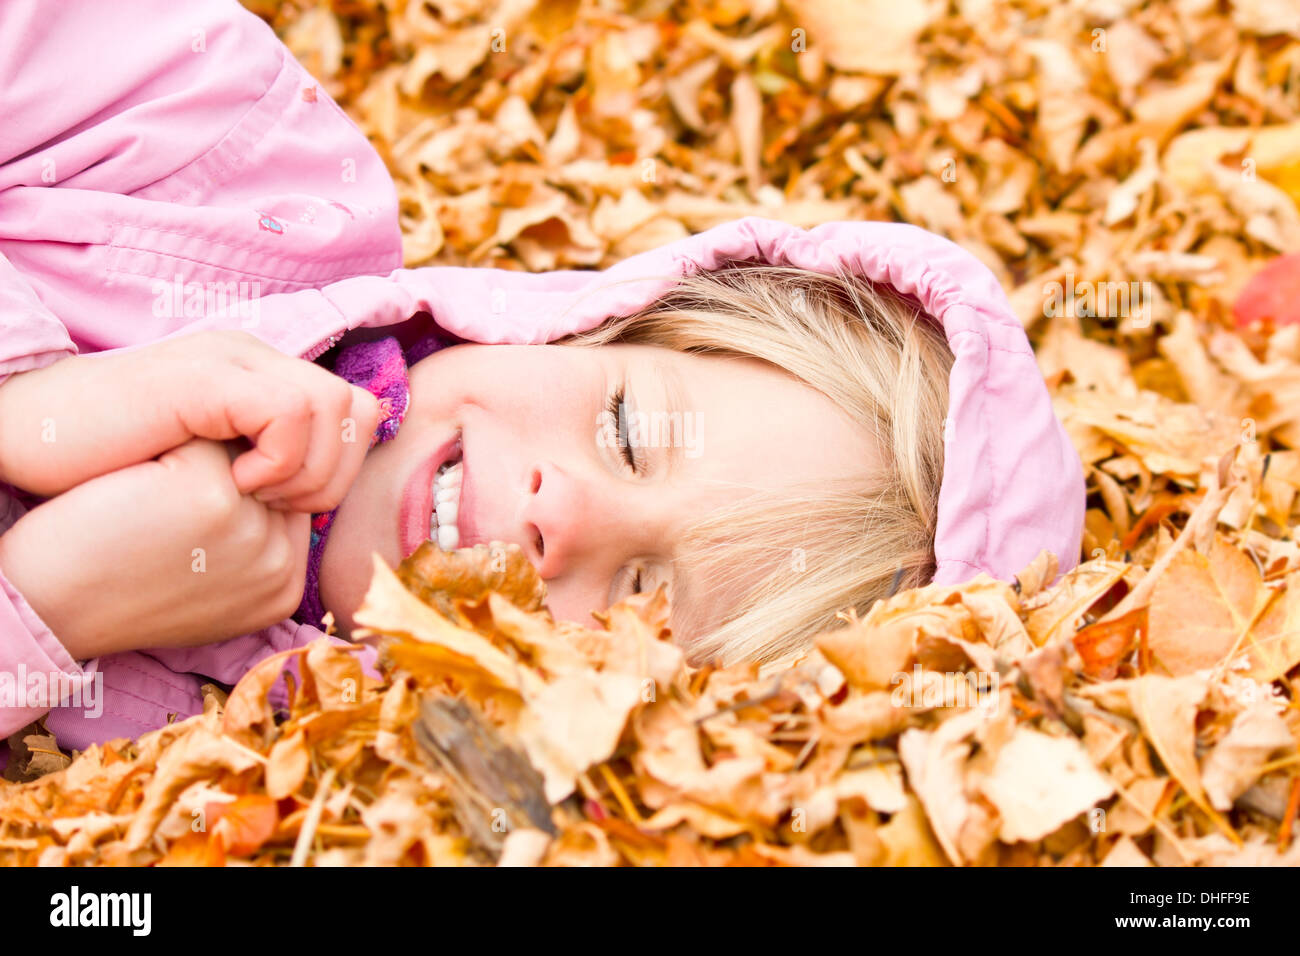 Little Girl Lying in Autumn Leaves with a big grin - Stock Image